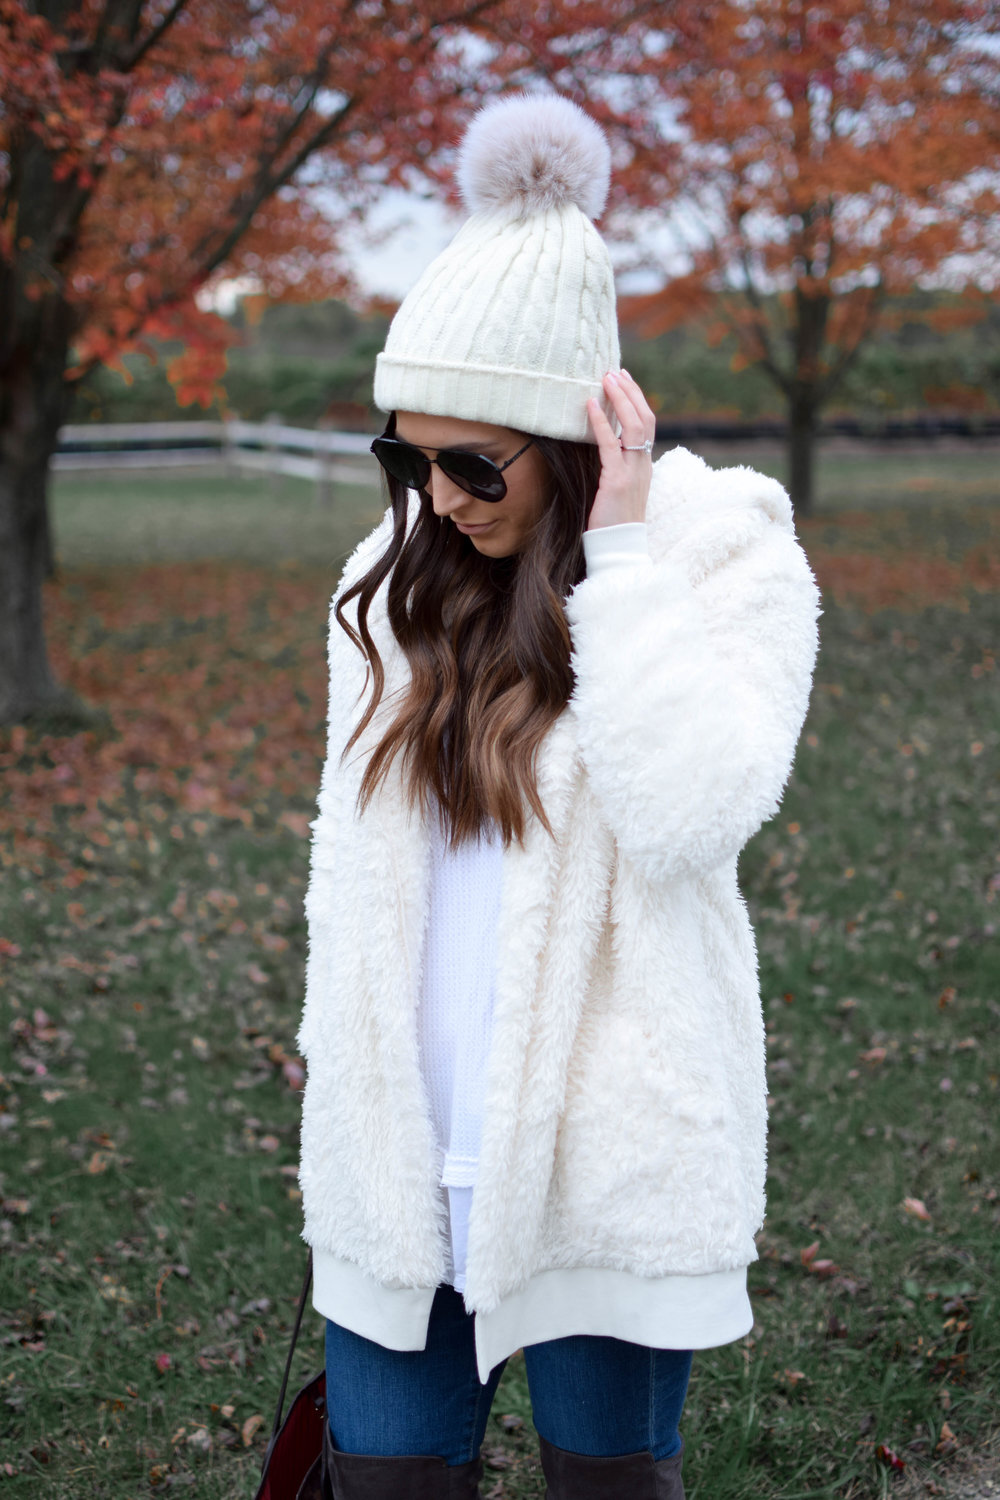 fall fashion / fall outfit idea / fall outfit inspiration / how to style a teddy bear coat / cozy coat / sweater weather / over the knee boots